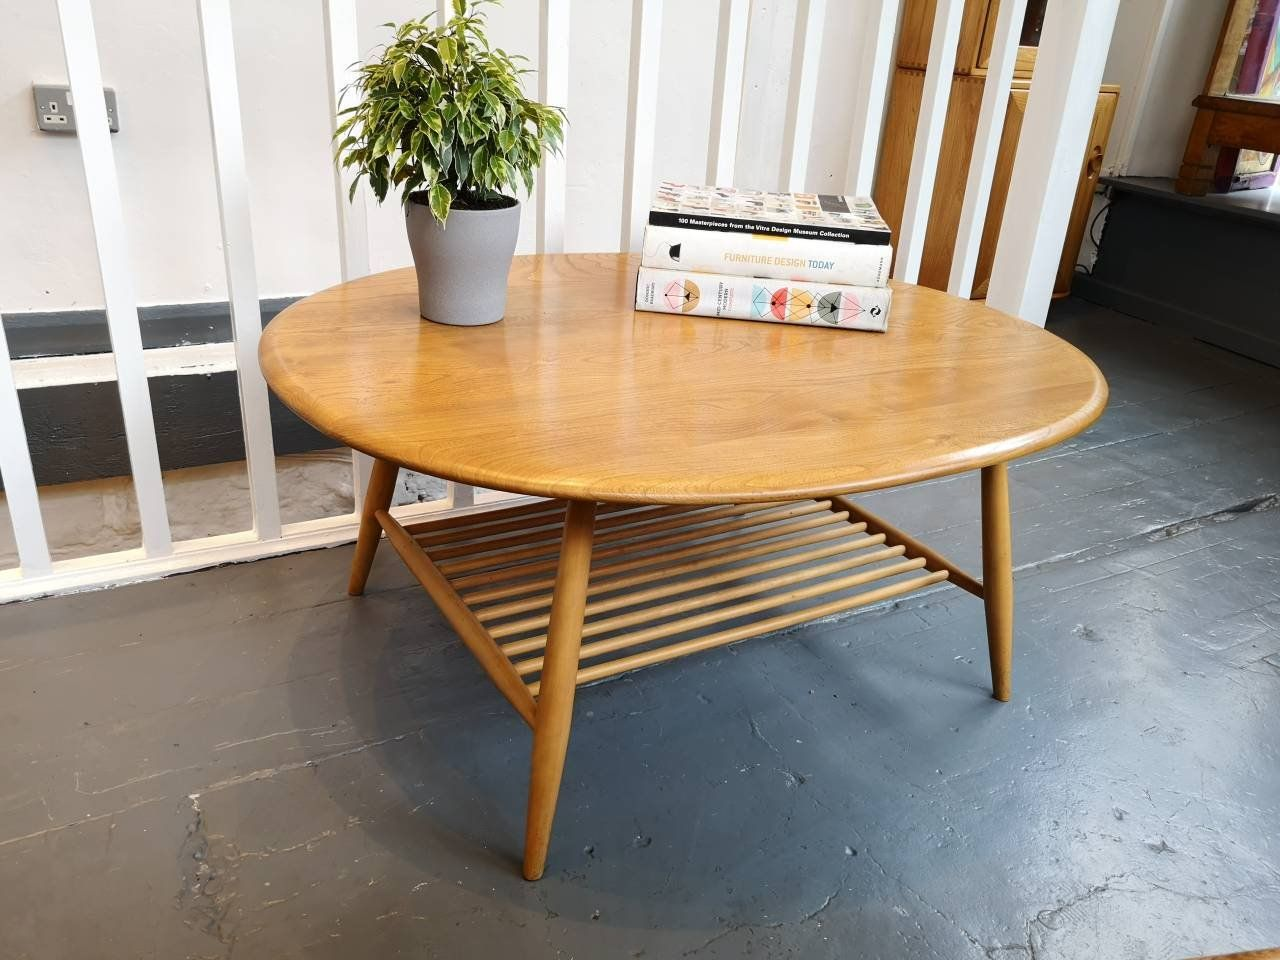 1960s Ercol Round Coffee Table With Magazine Rack In Elm Beech